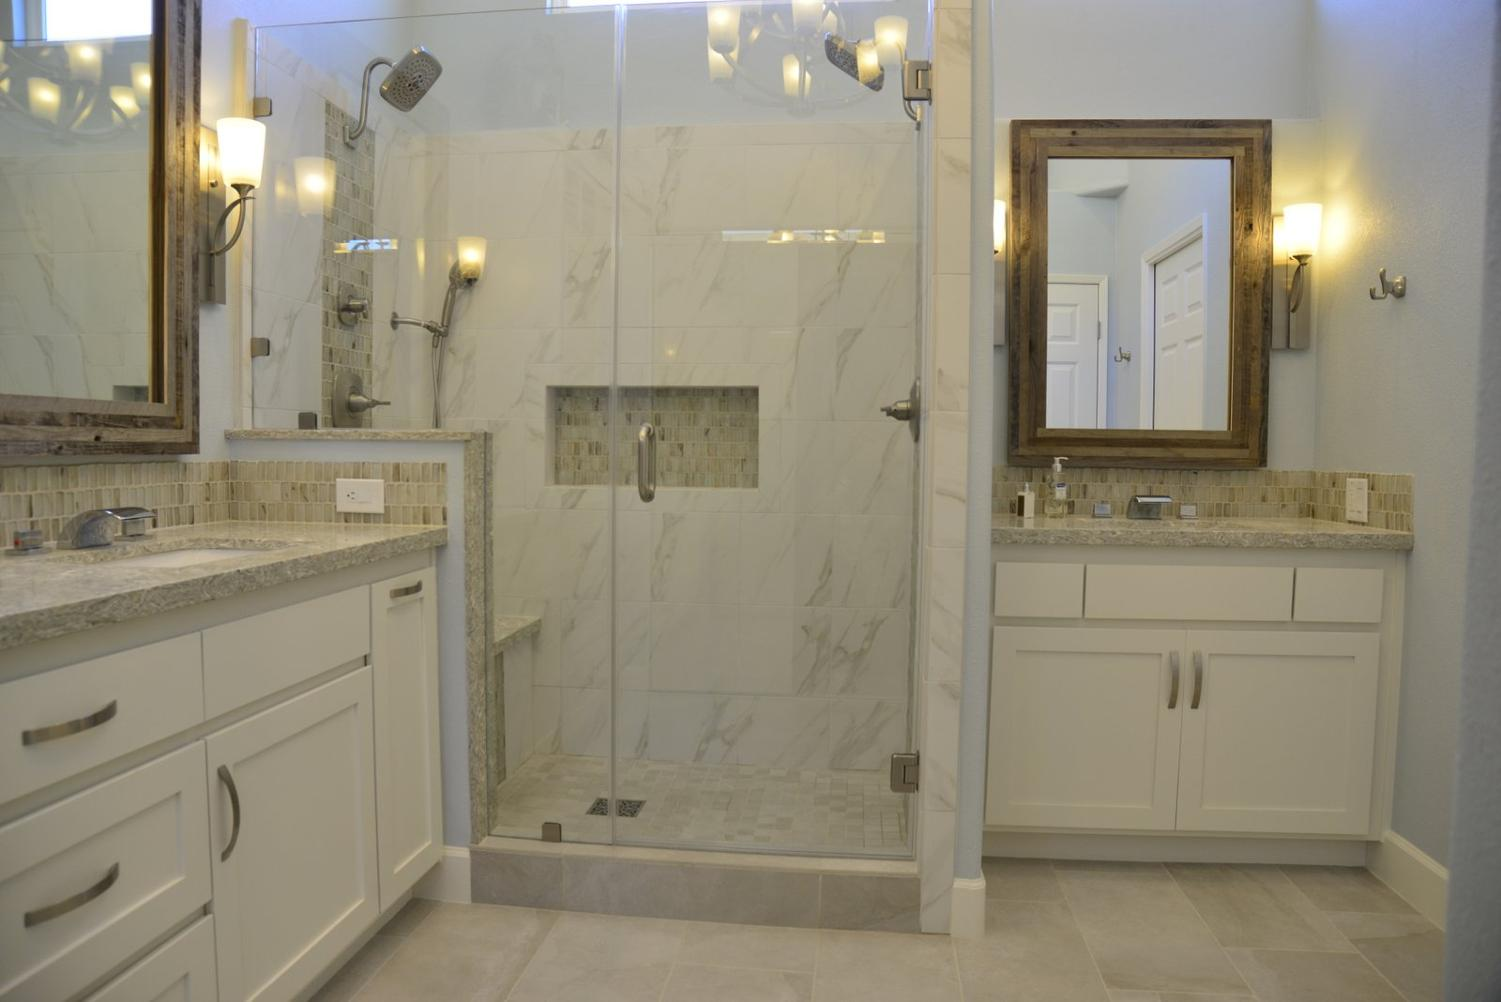 Advanced Construction And Design Palmdale California - Bathroom remodeling palmdale ca